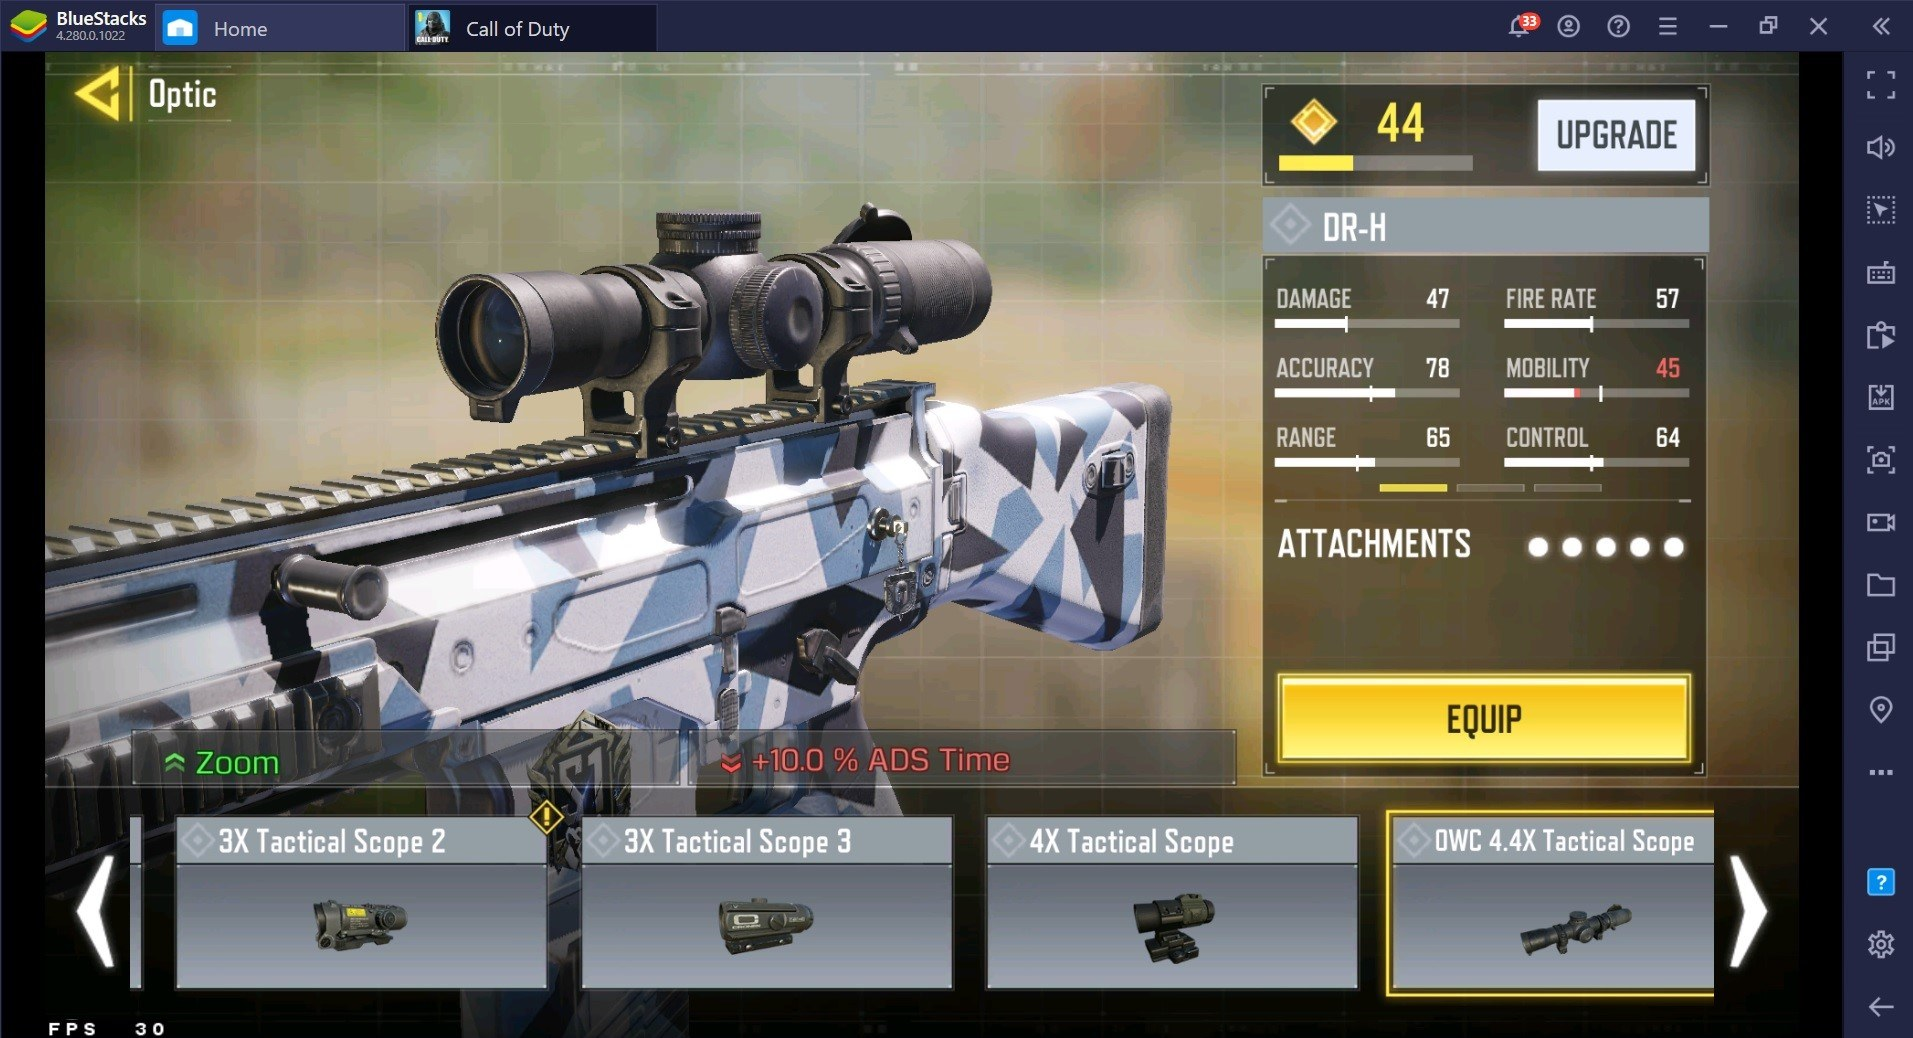 Call of Duty: Mobile AK-47 and DR-H Loadout for Season 3 Games